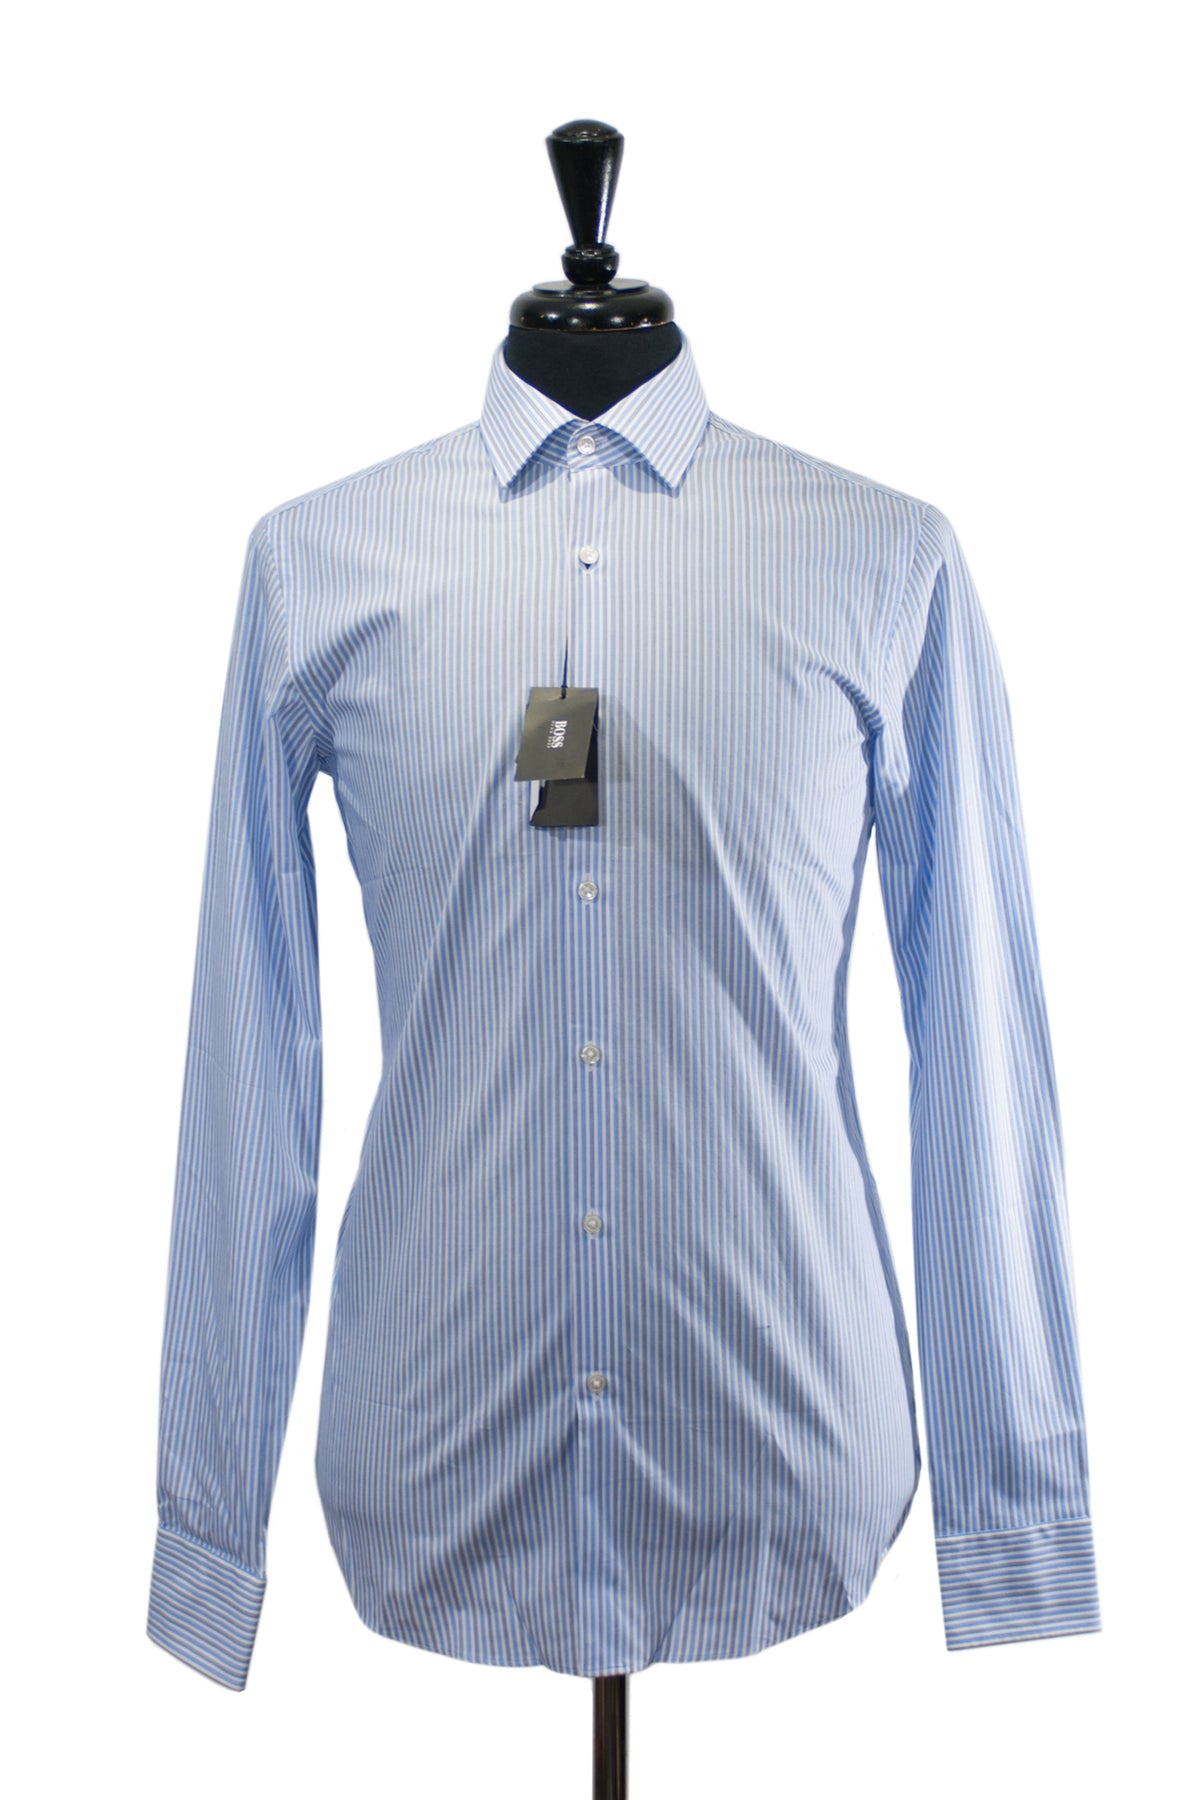 Hugo Boss NWT Blue Striped Sharp Fit Marley Shirt